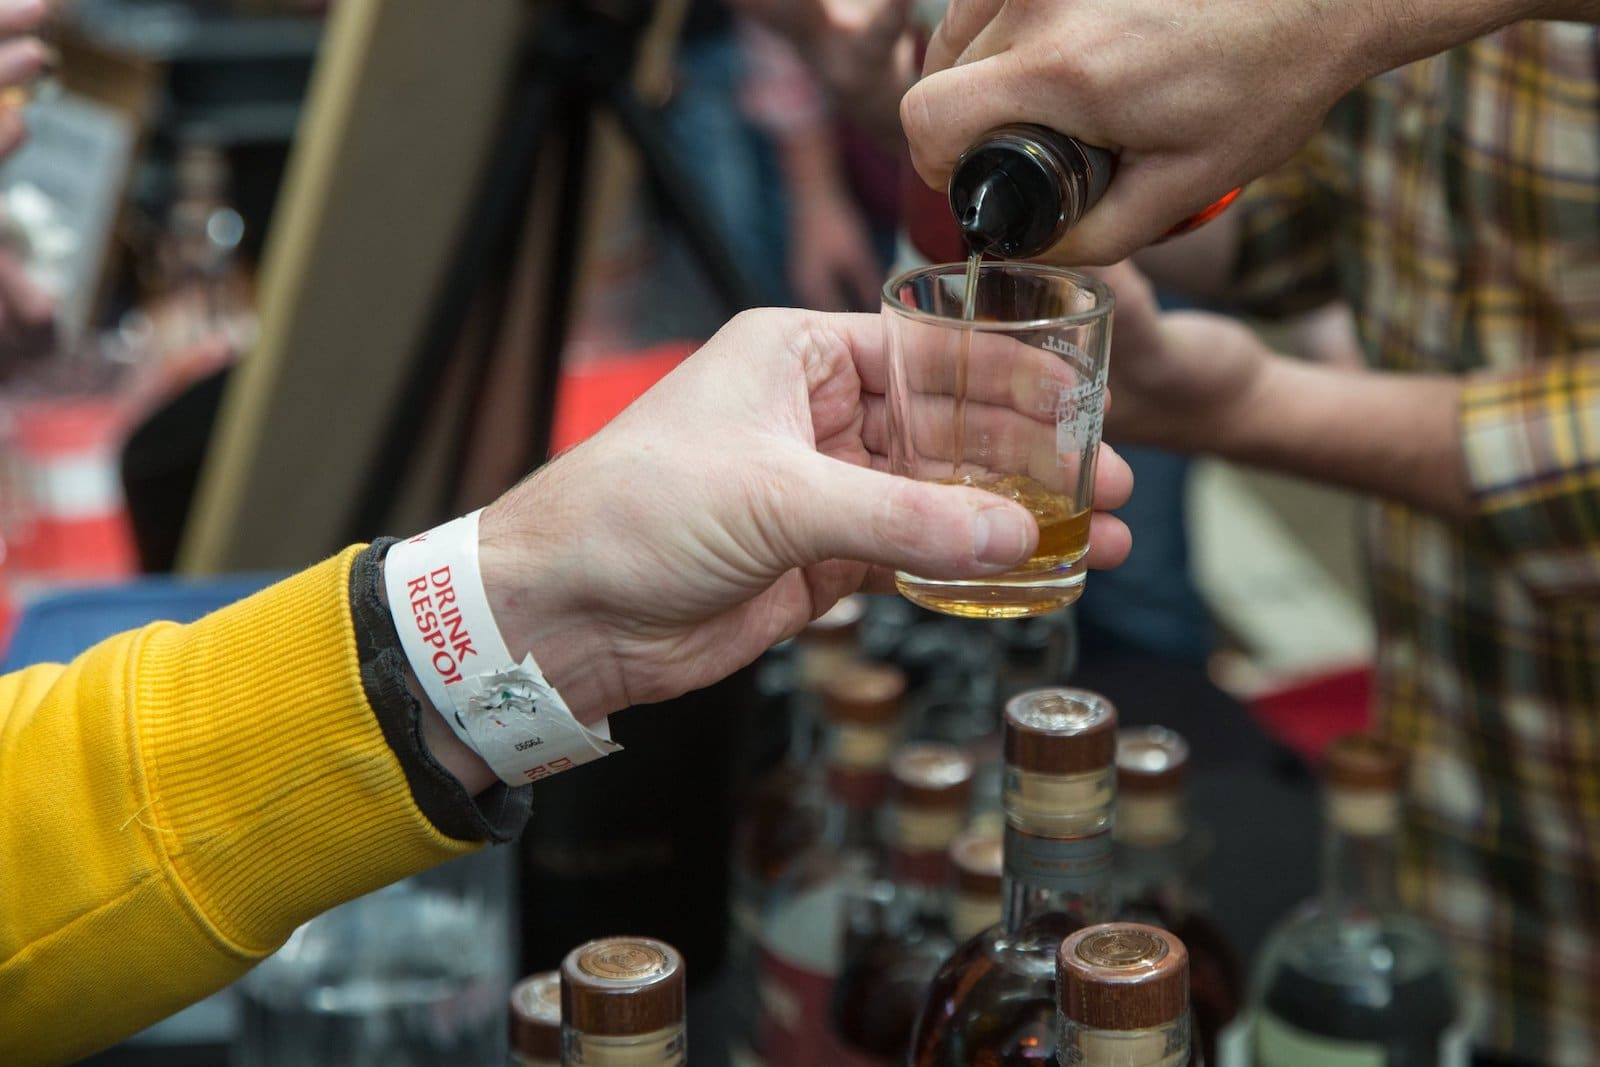 Image of a person pouring a sample at the Breckenridge Craft Spirits Festival in Colorado